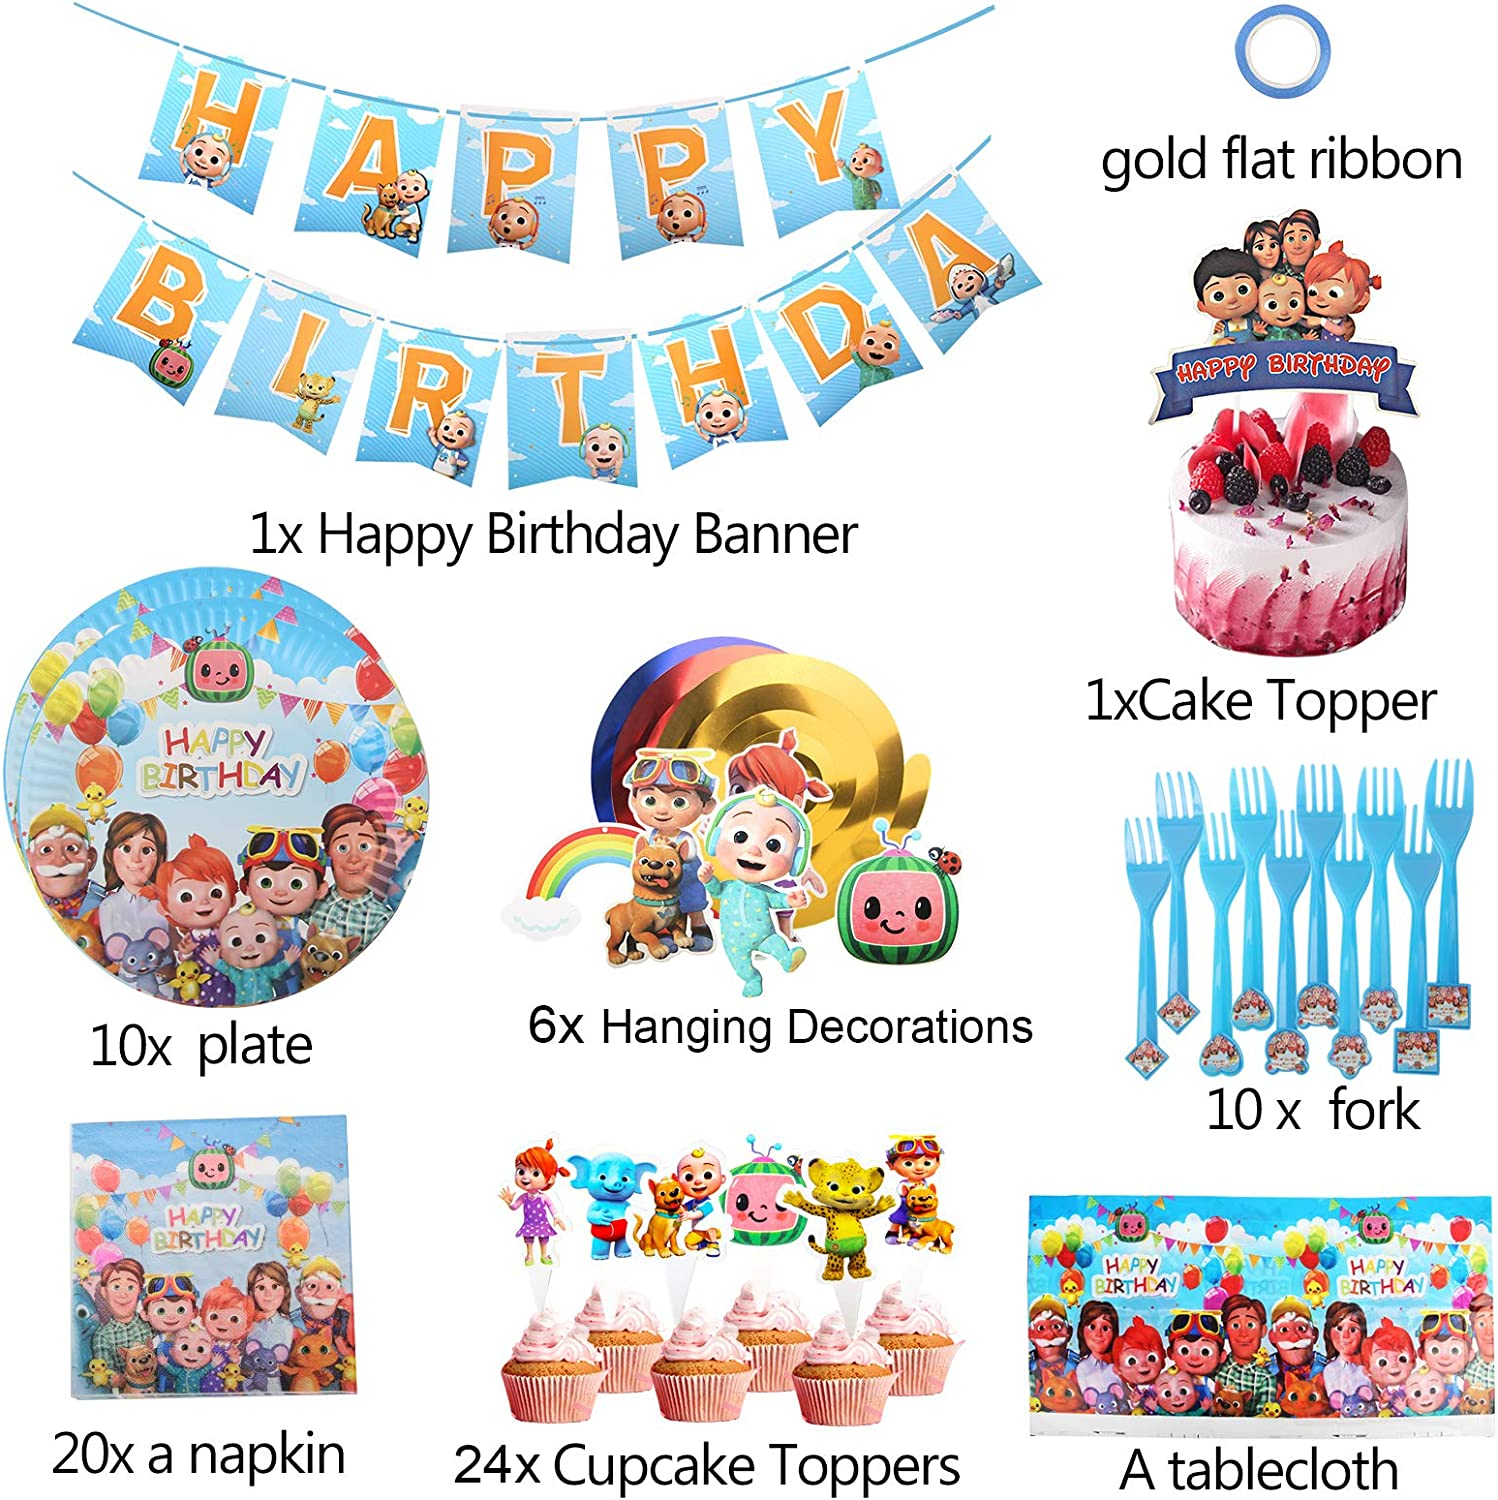 20x Photo Booth Props Kit for Kids Birthday Party Wedding Party Favors